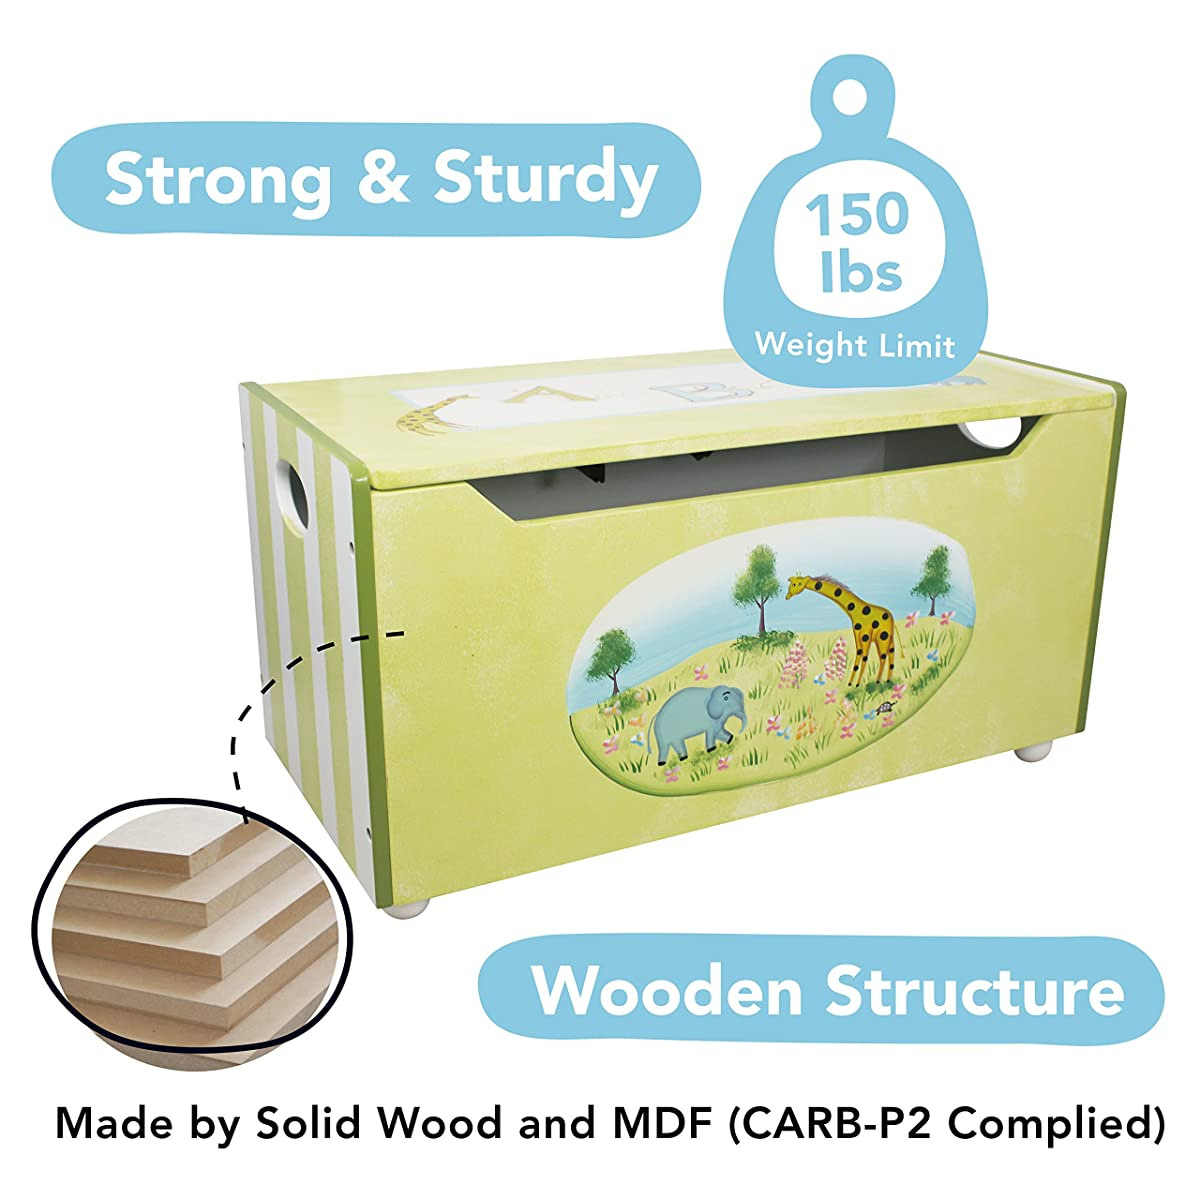 Fantasy Fields - Alphabet Thematic Kids Wooden Toy Chest with Safety Hinges | Imagination Inspiring Hand Crafted & Hand Painted Details Non-Toxic, Lead Free Water-based Paint